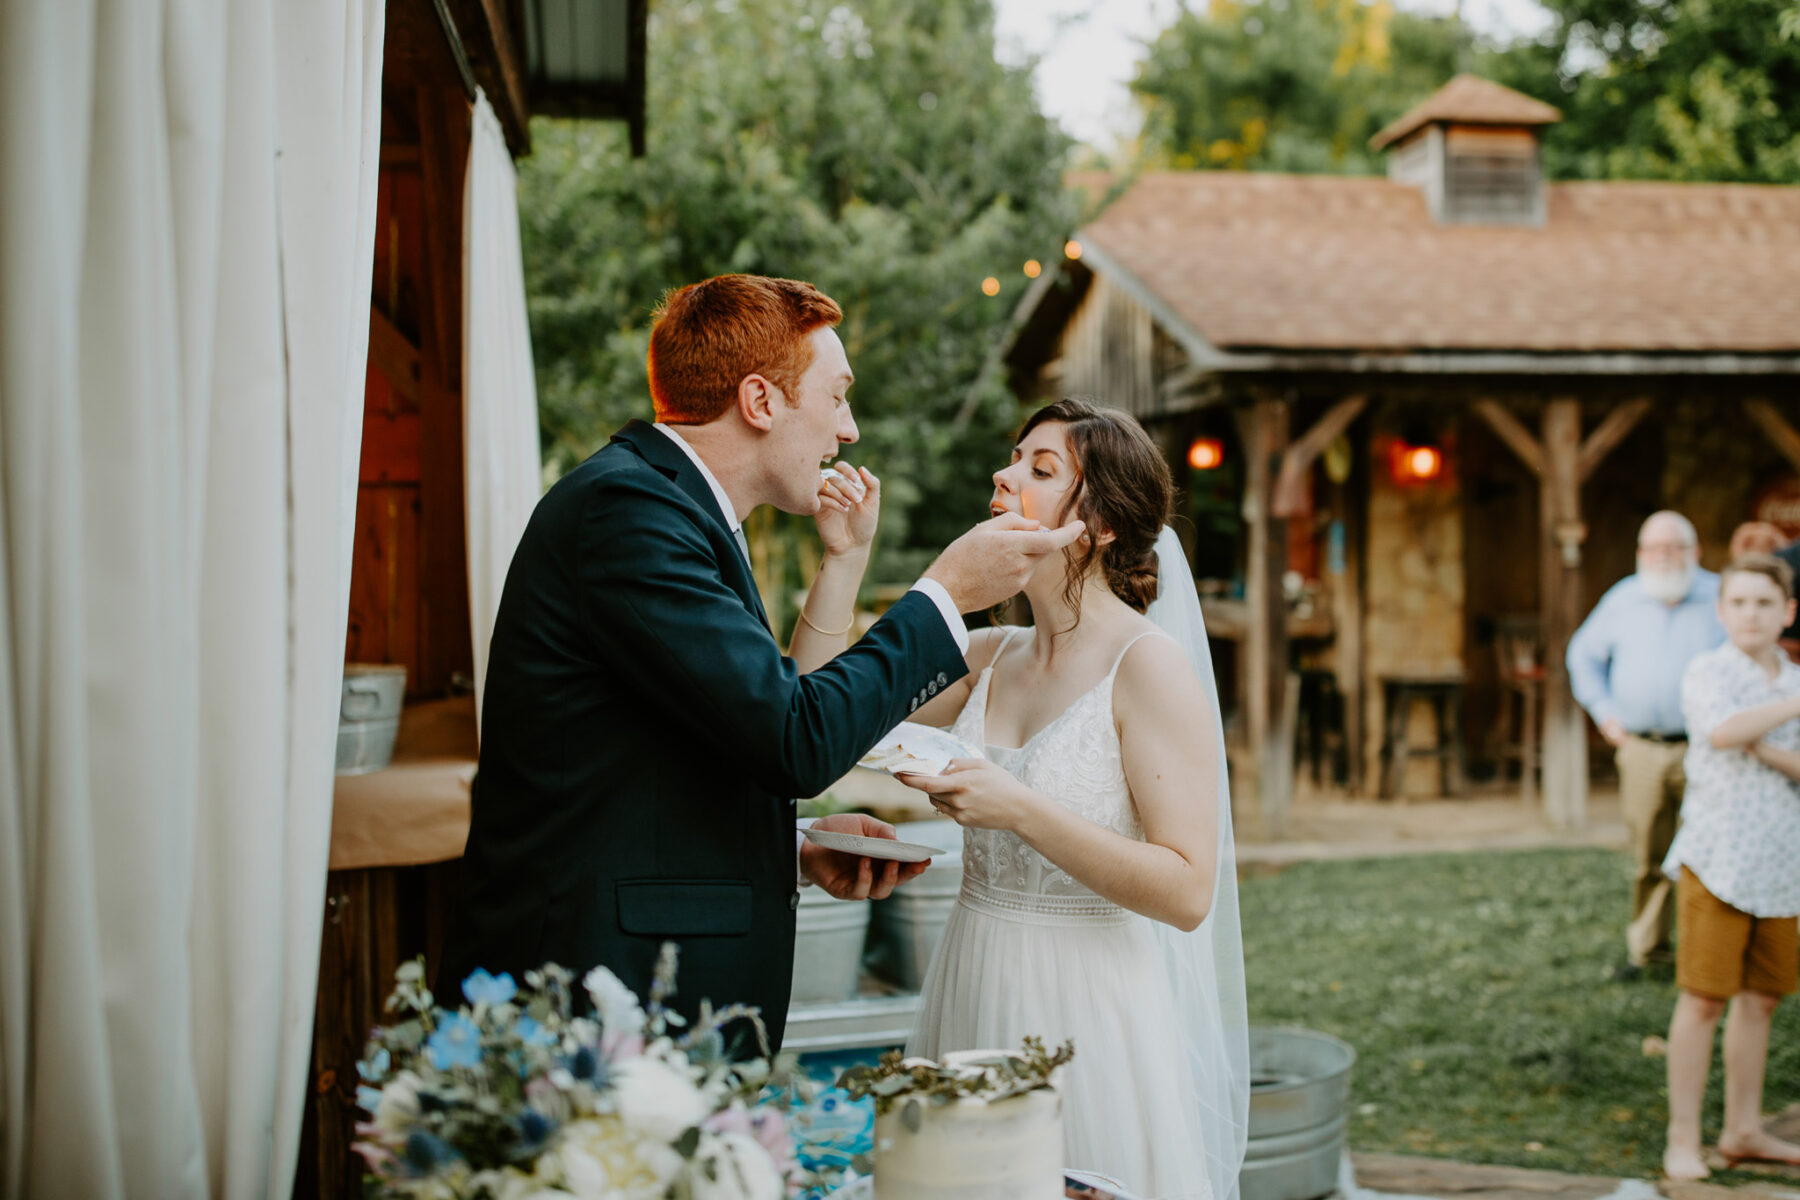 Vibrant Summer Wedding at Sinking Creek Farm featured on Nashville Bride Guide